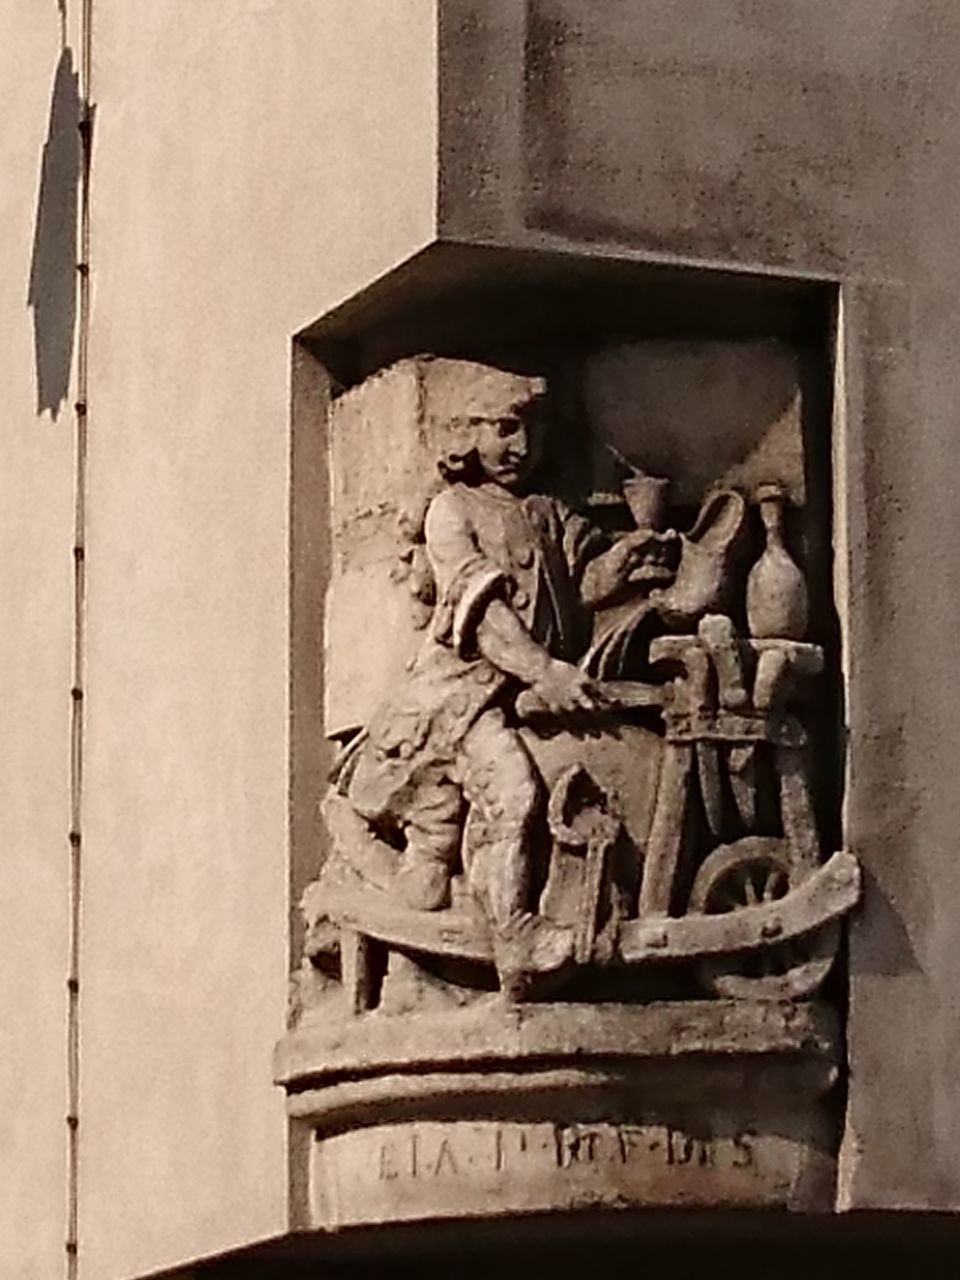 OLD STATUE AGAINST BUILDING